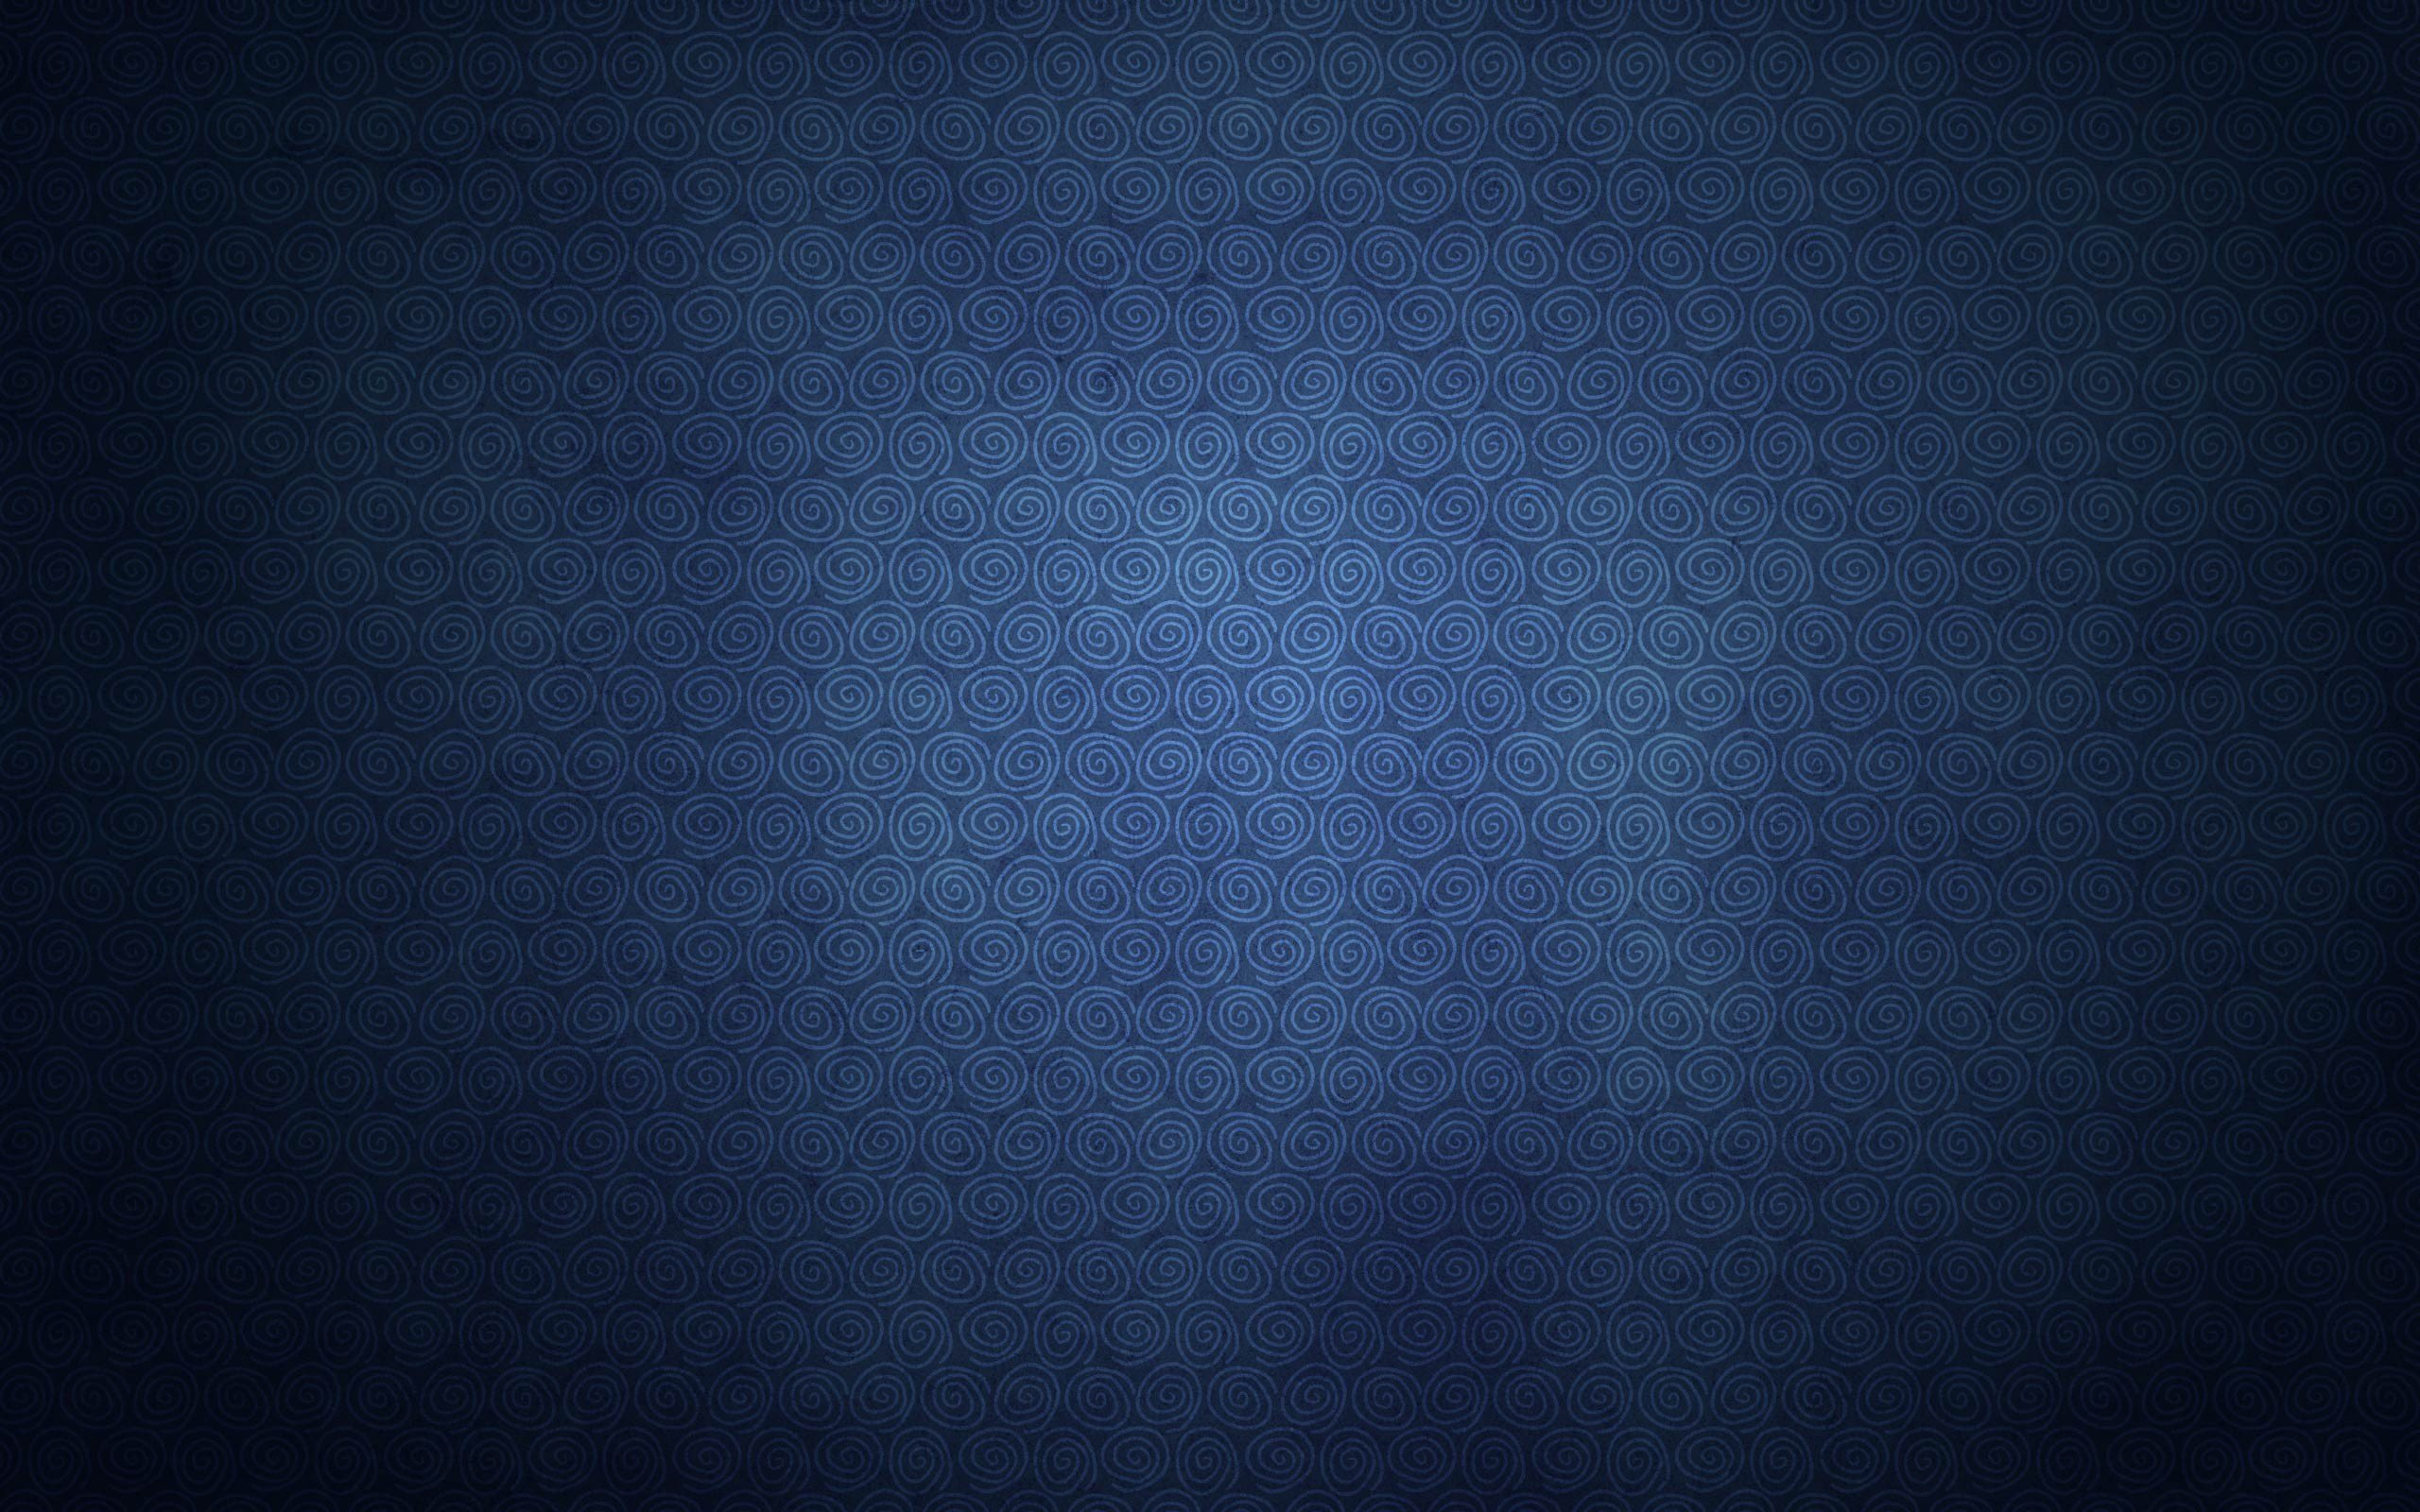 Dark blue wallpaper wallpapersafari for Dark blue wallpaper for walls